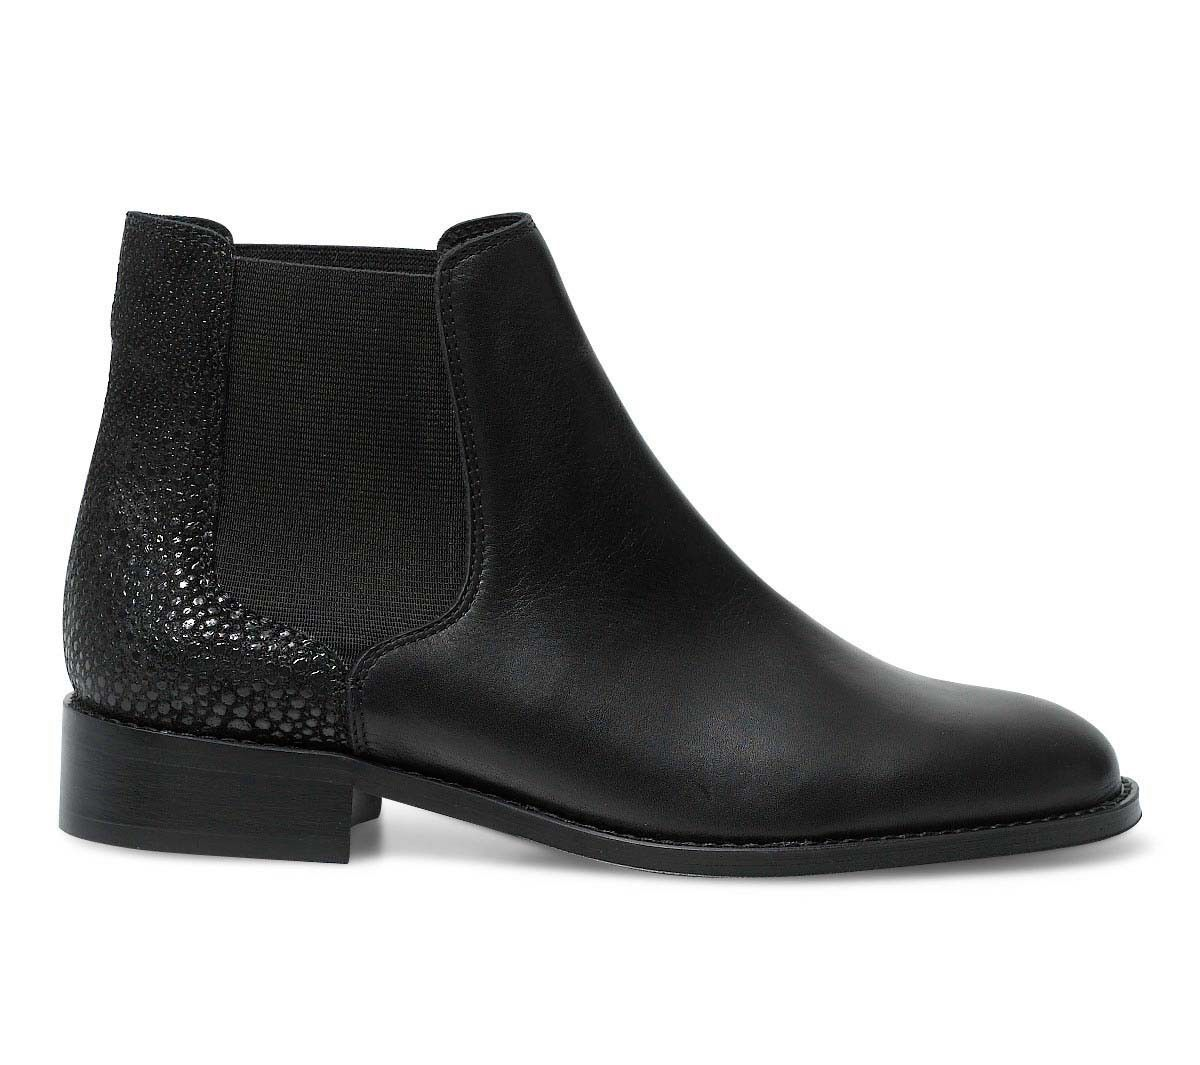 bottines noires en cuir femme | shoes selection | pinterest